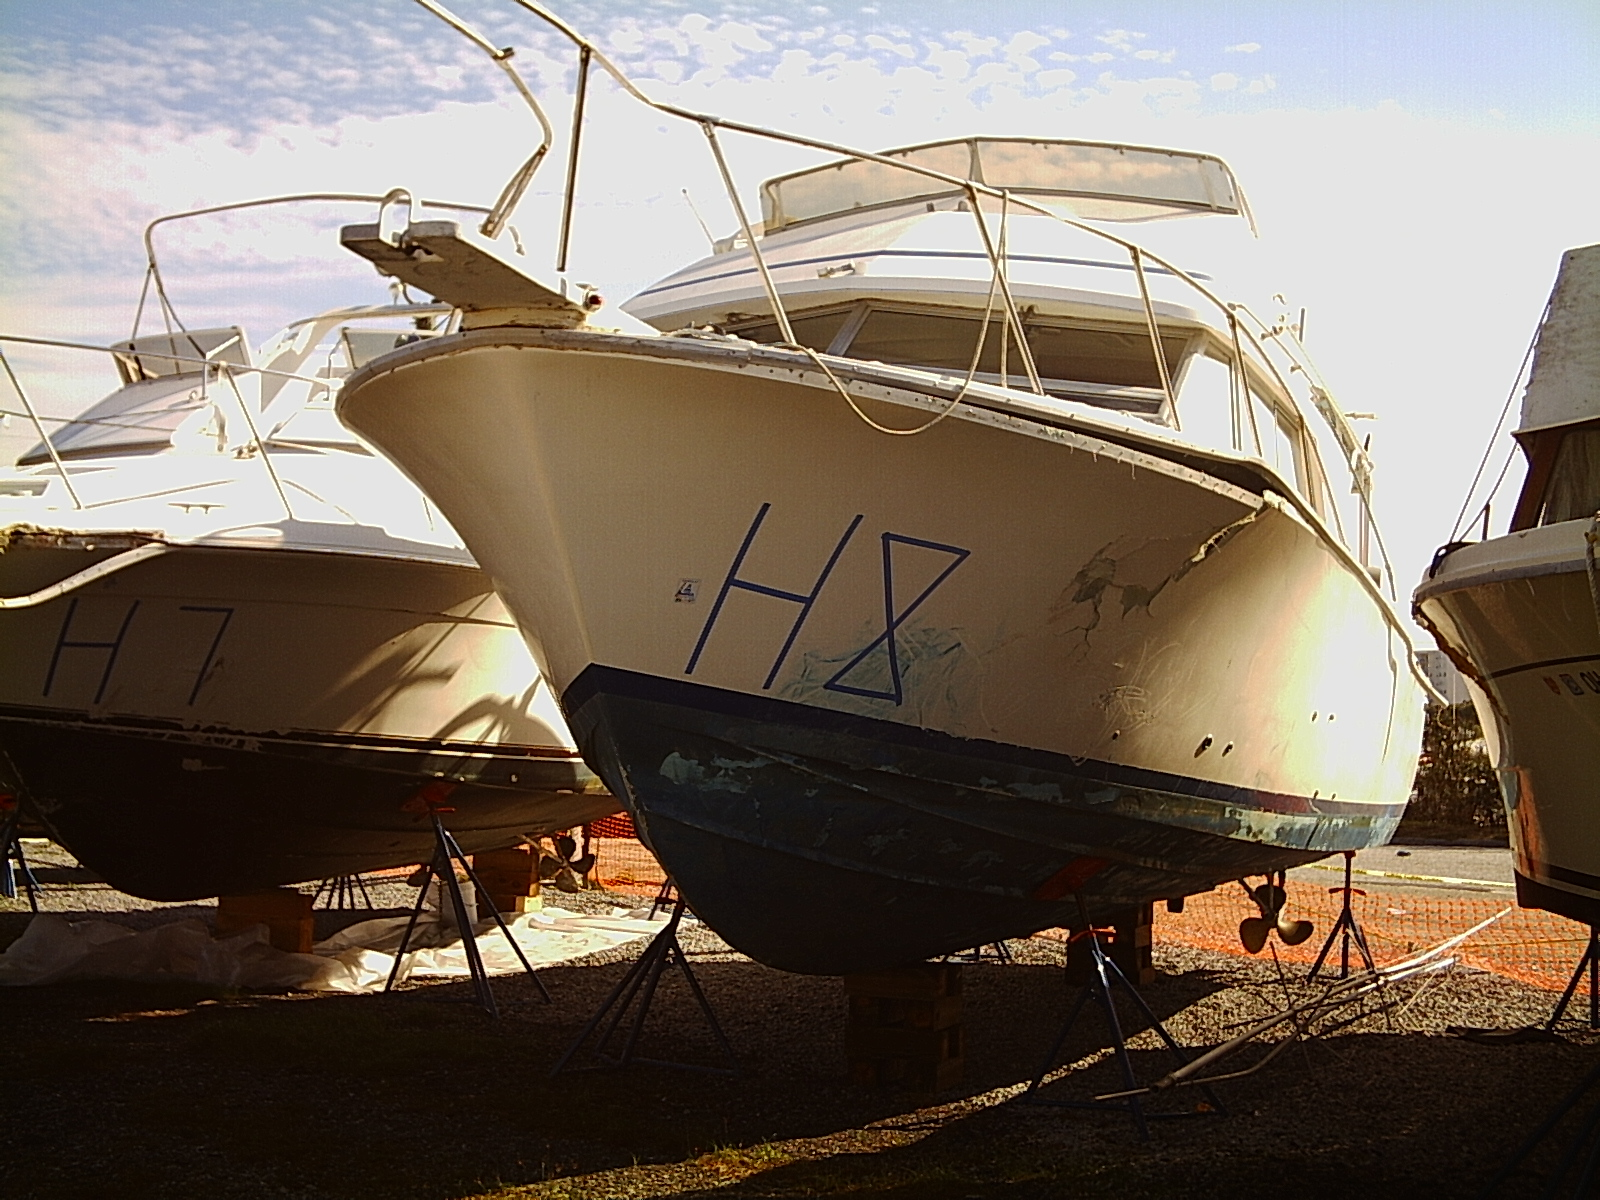 This Bertram 33 was damaged by Hurricane Ivan in 2004. The boat slammed into ...